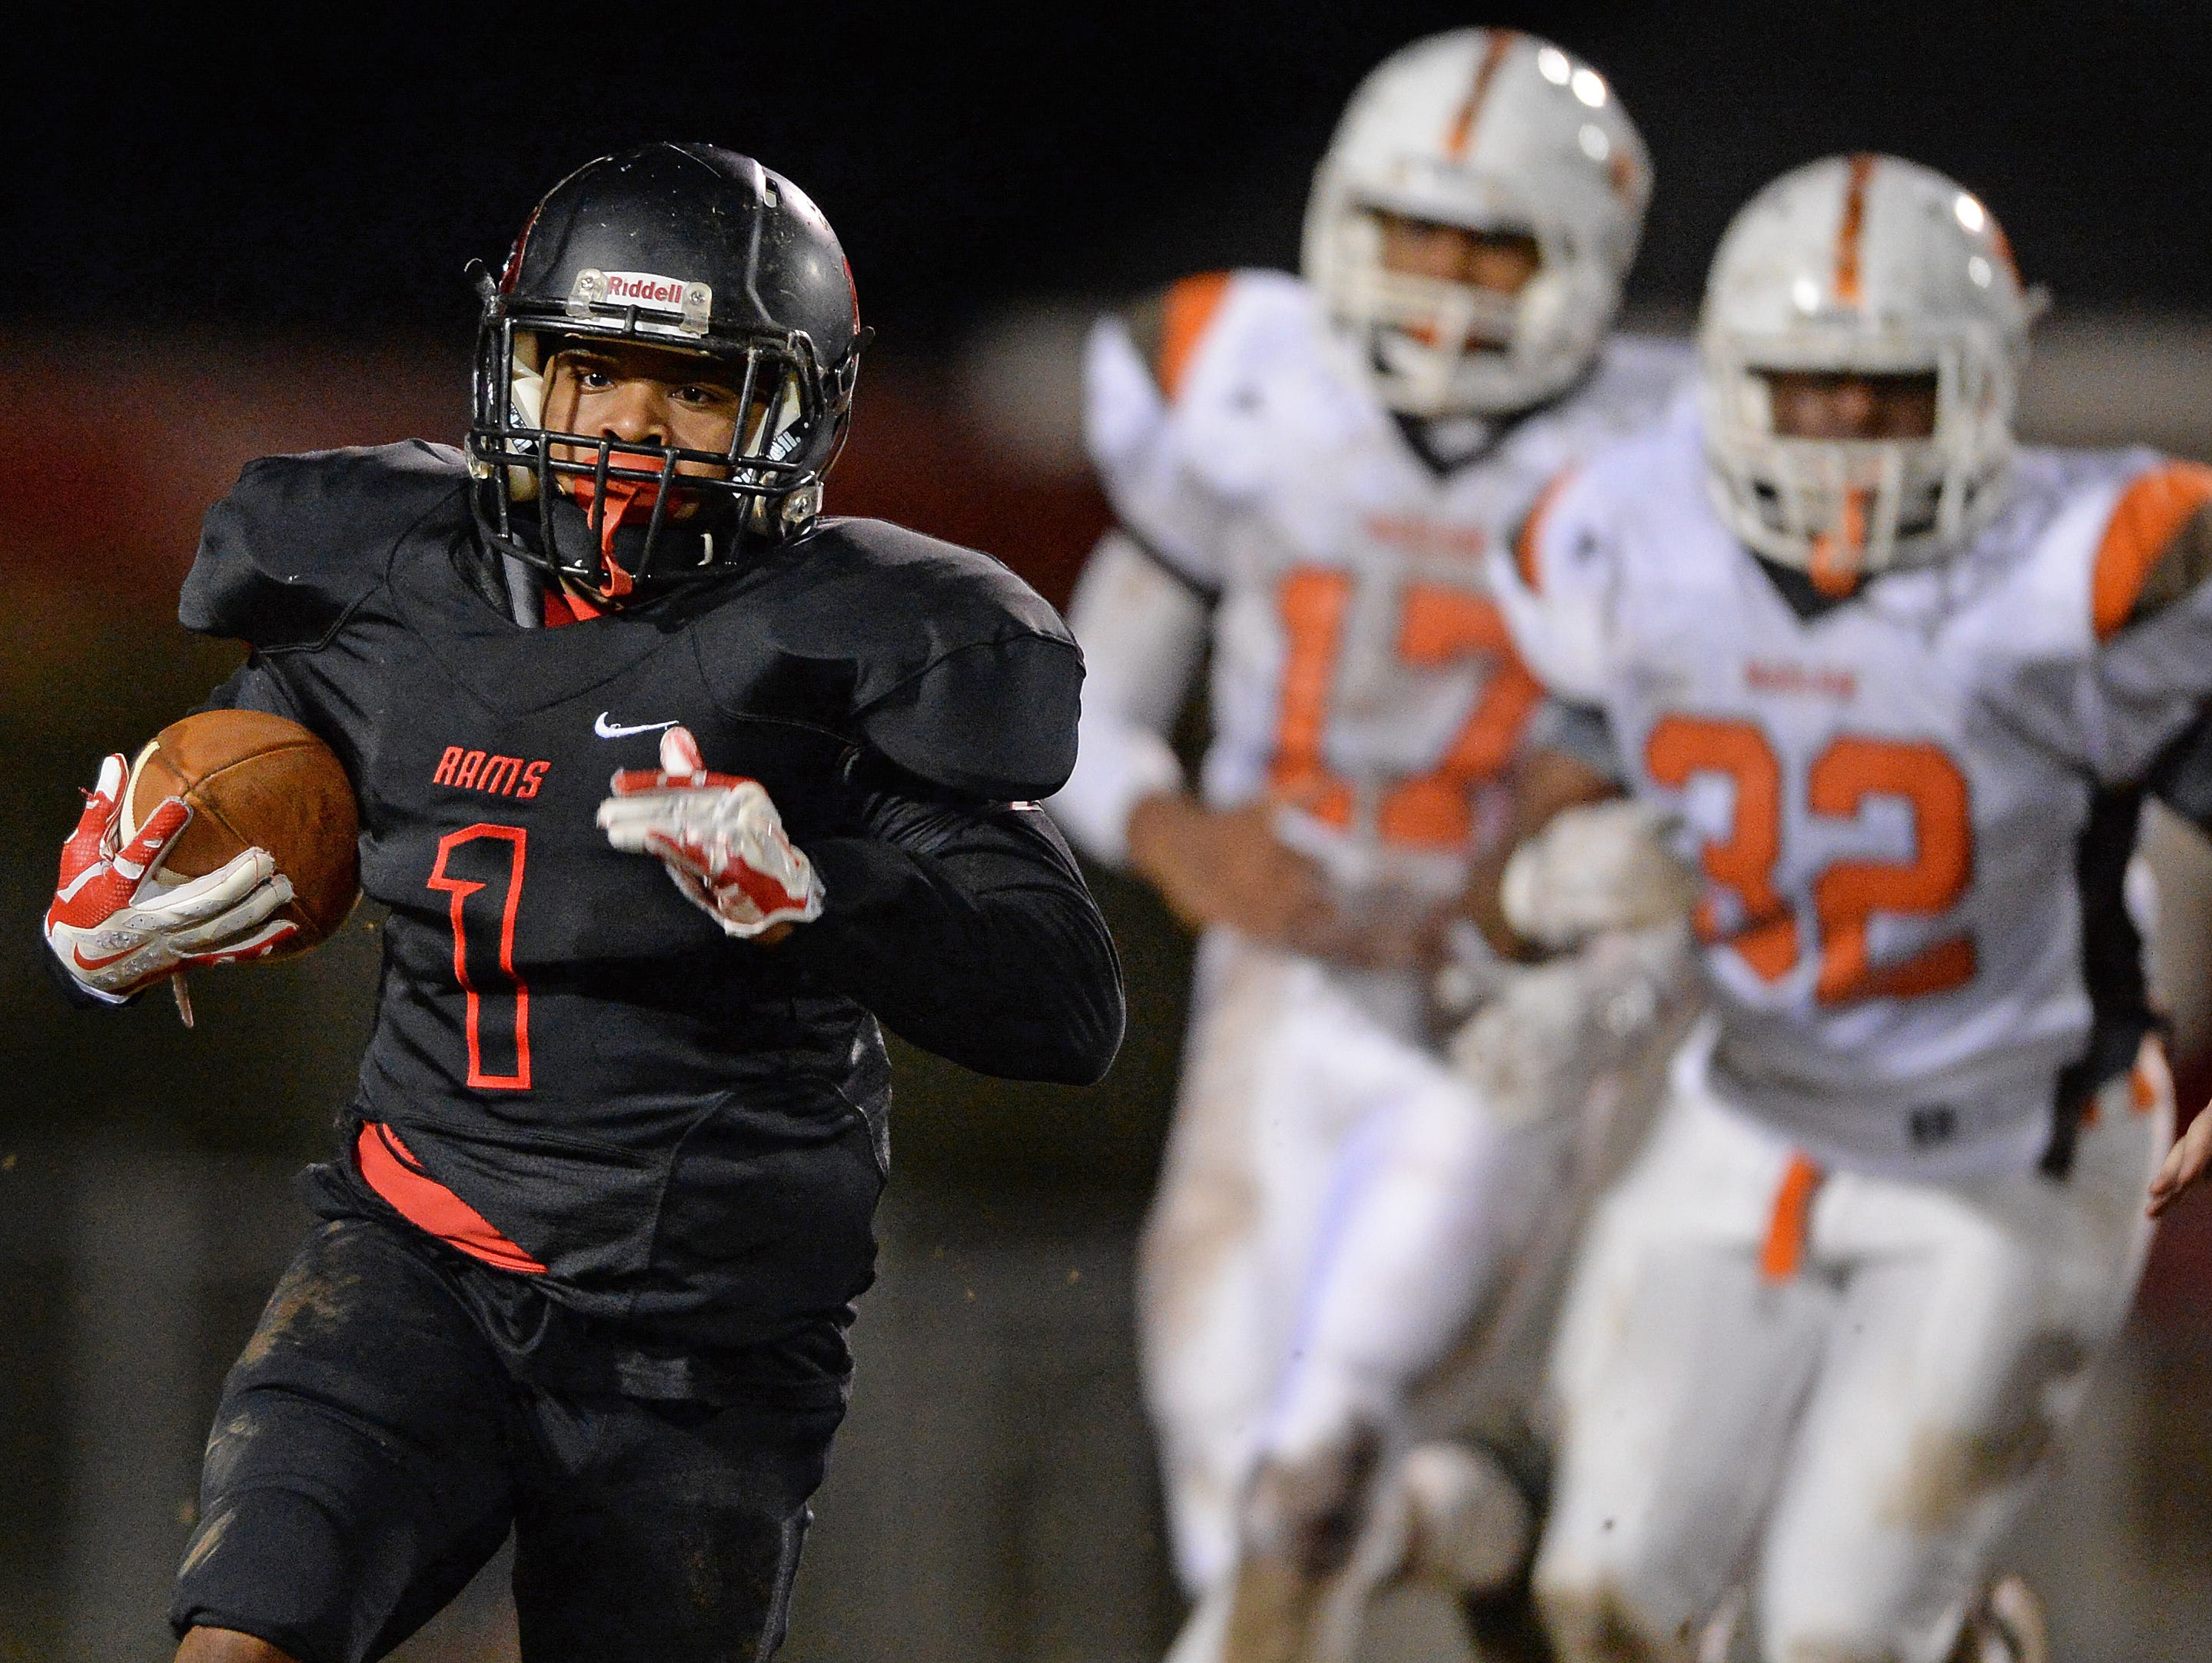 Hillcrest's Quintavis Ballenger (1) carries against Mauldin during the first round of the Class AAAA Division-I playoffs Friday, November 20, 2015 at Hillcrest High.